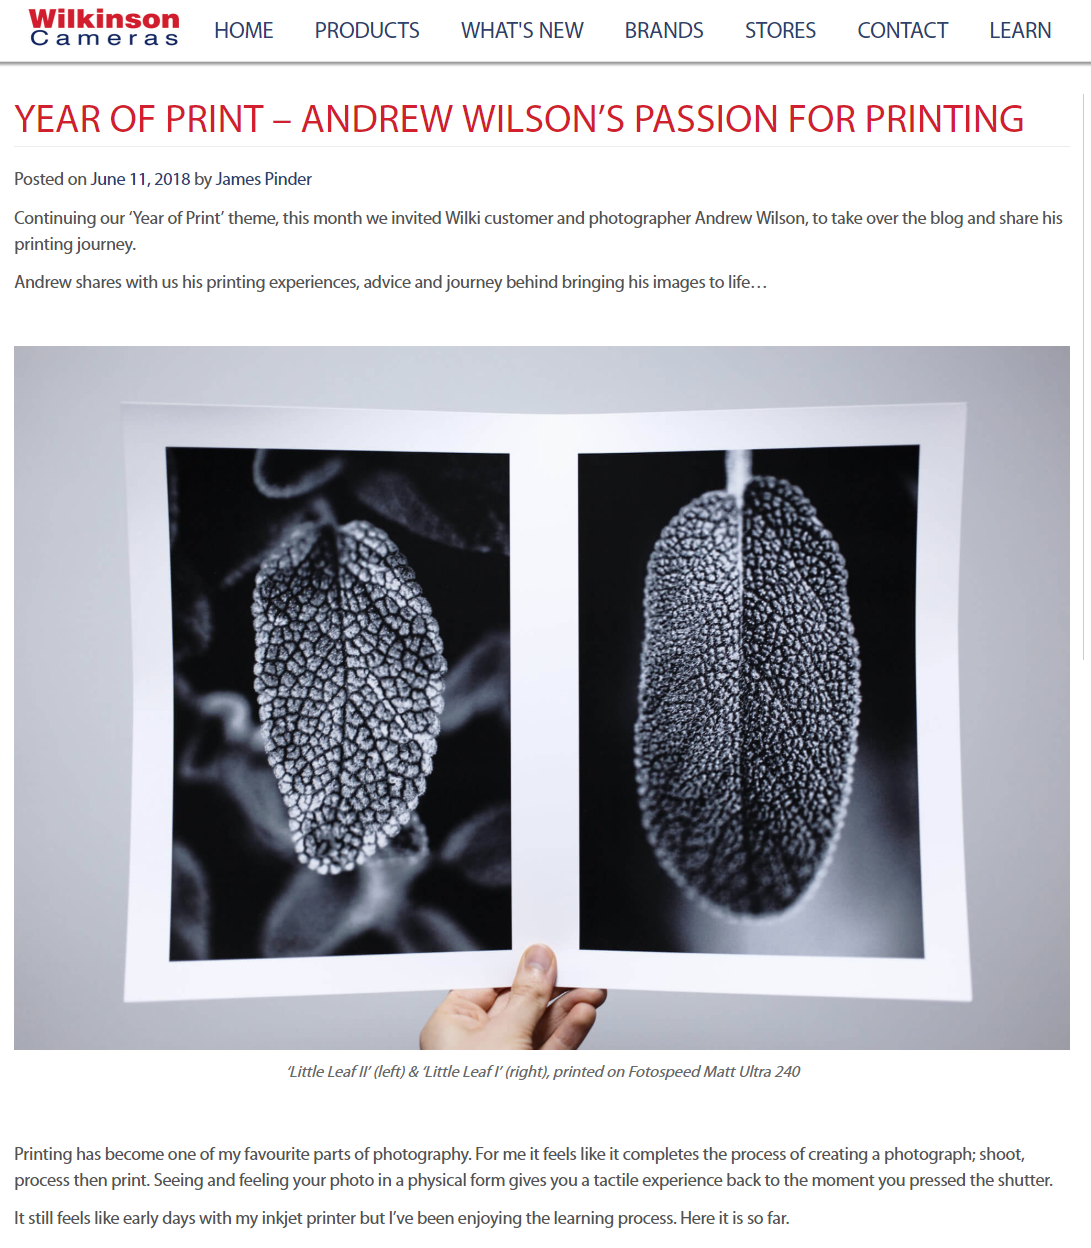 June - First guest blog for Wilkinson Cameras about my printing journey…